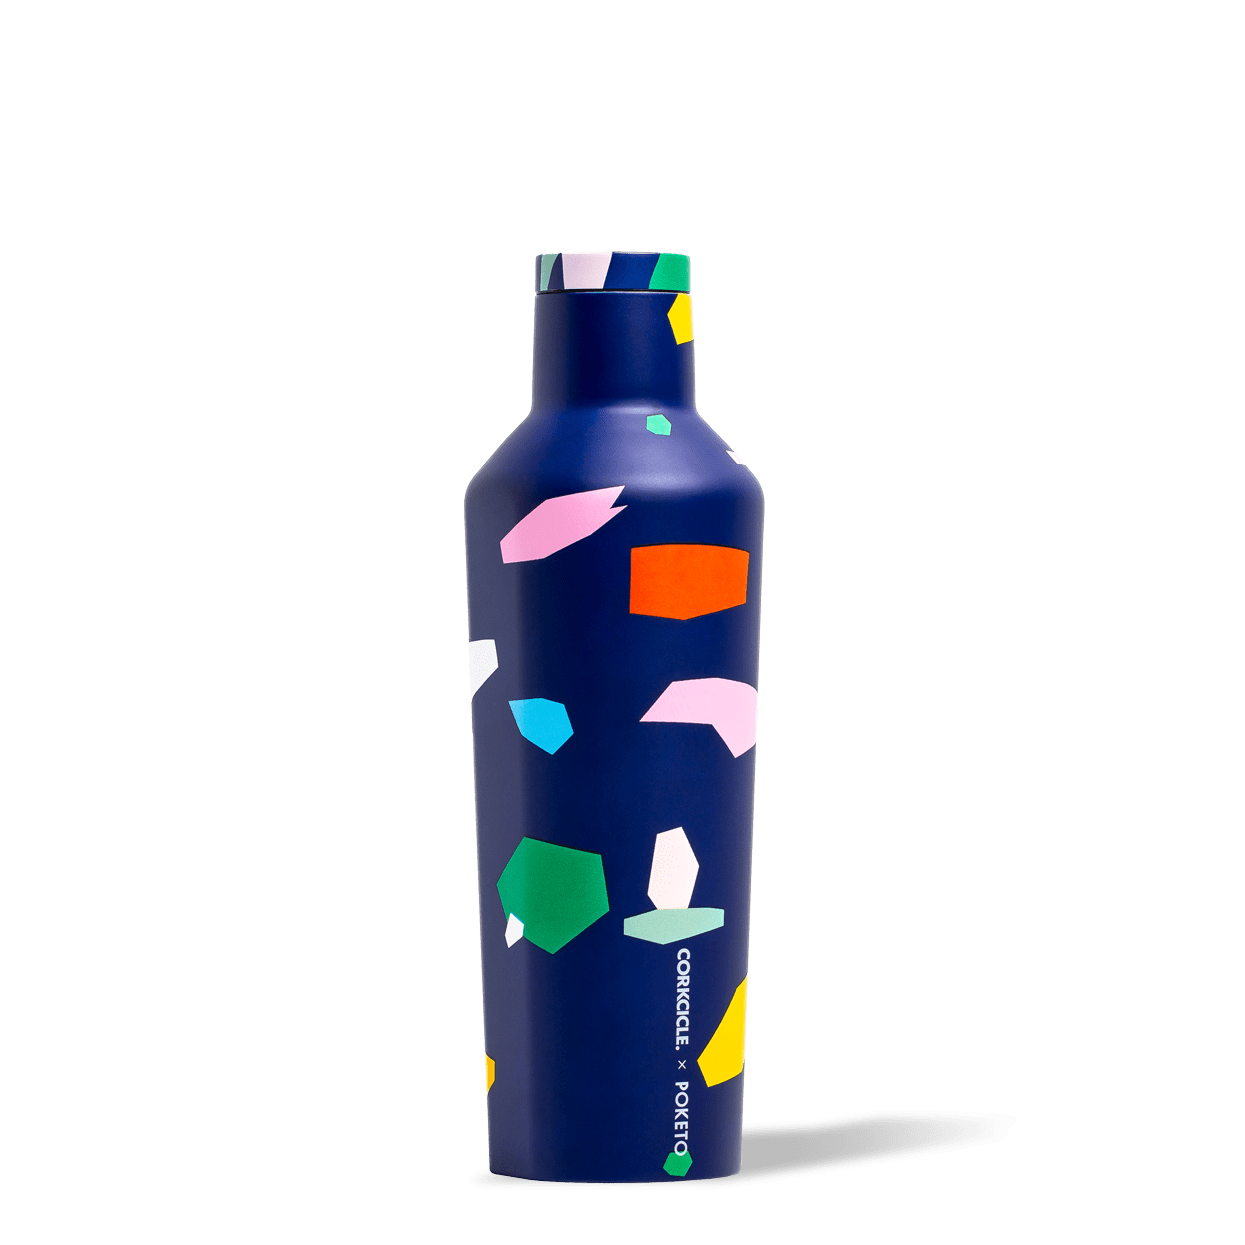 Corkcicle x Poketo Blue Confetti 16oz Canteen.